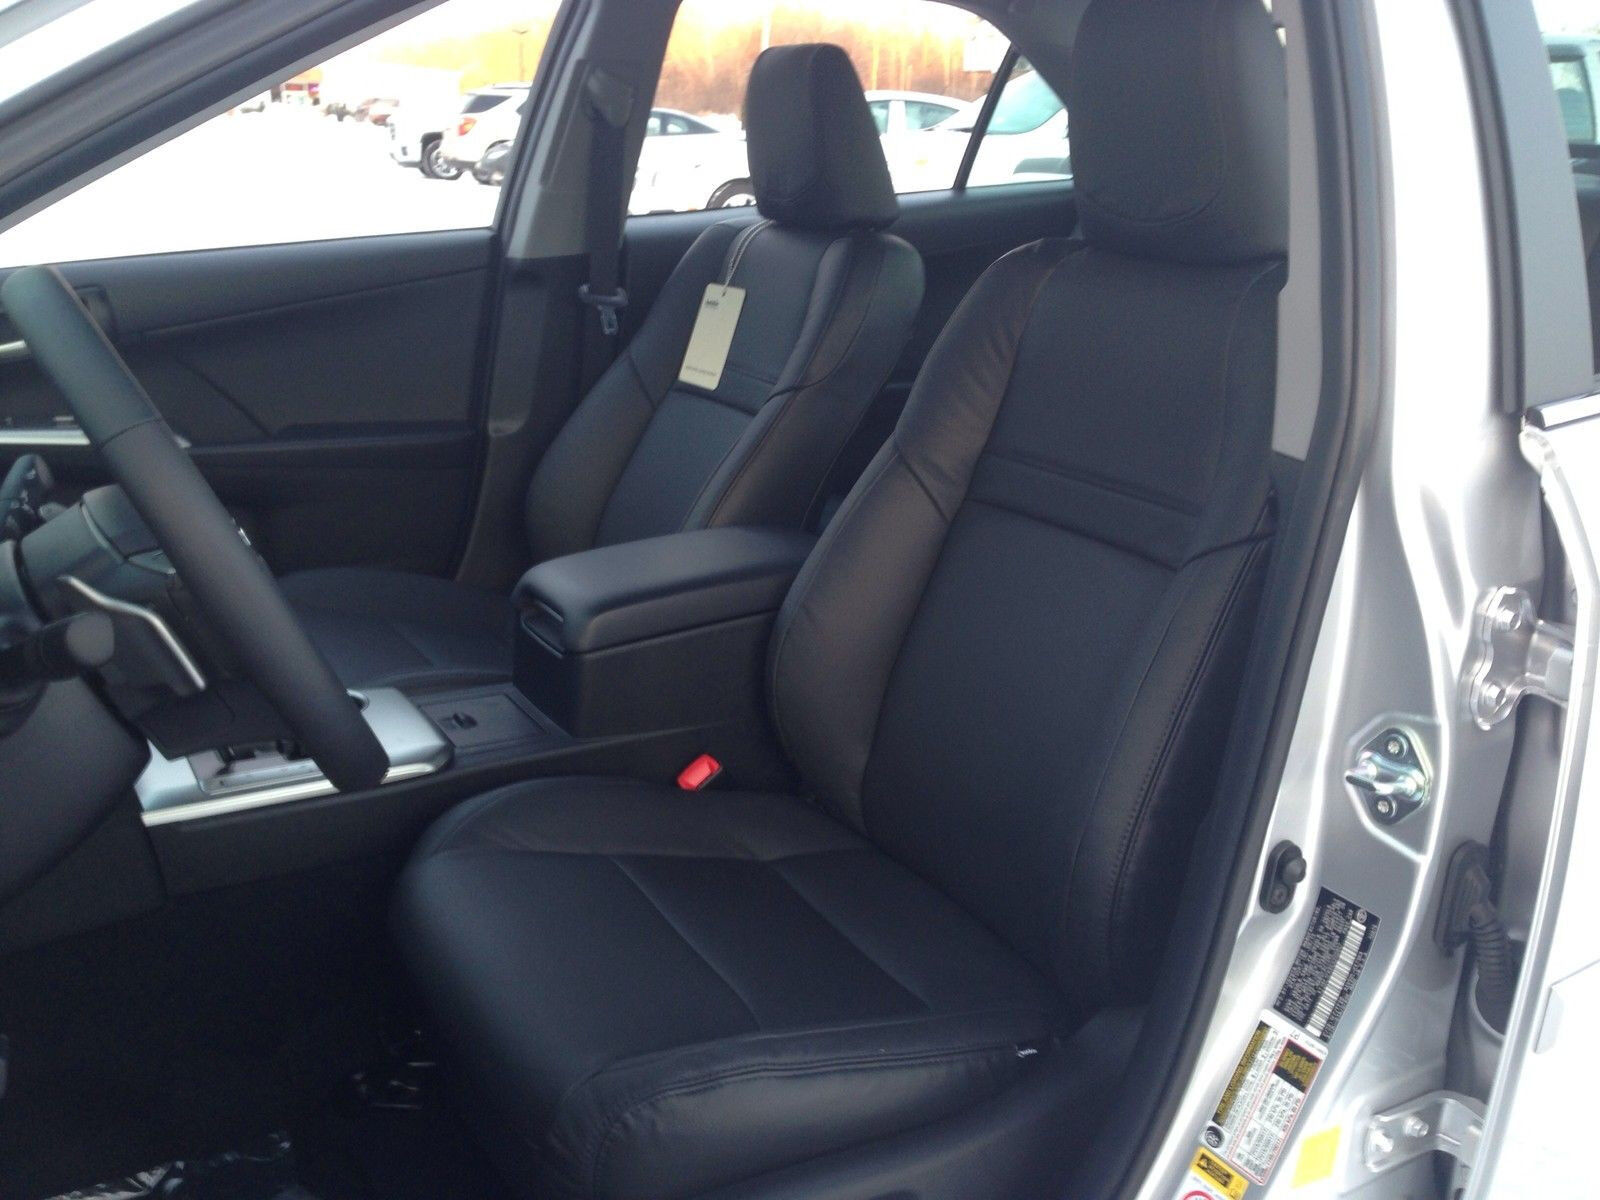 Toyota Camry Interior >> Details About Katzkin Black Leather Interior Seat Cover Kit Fit 2012 2013 2014 Toyota Camry Se